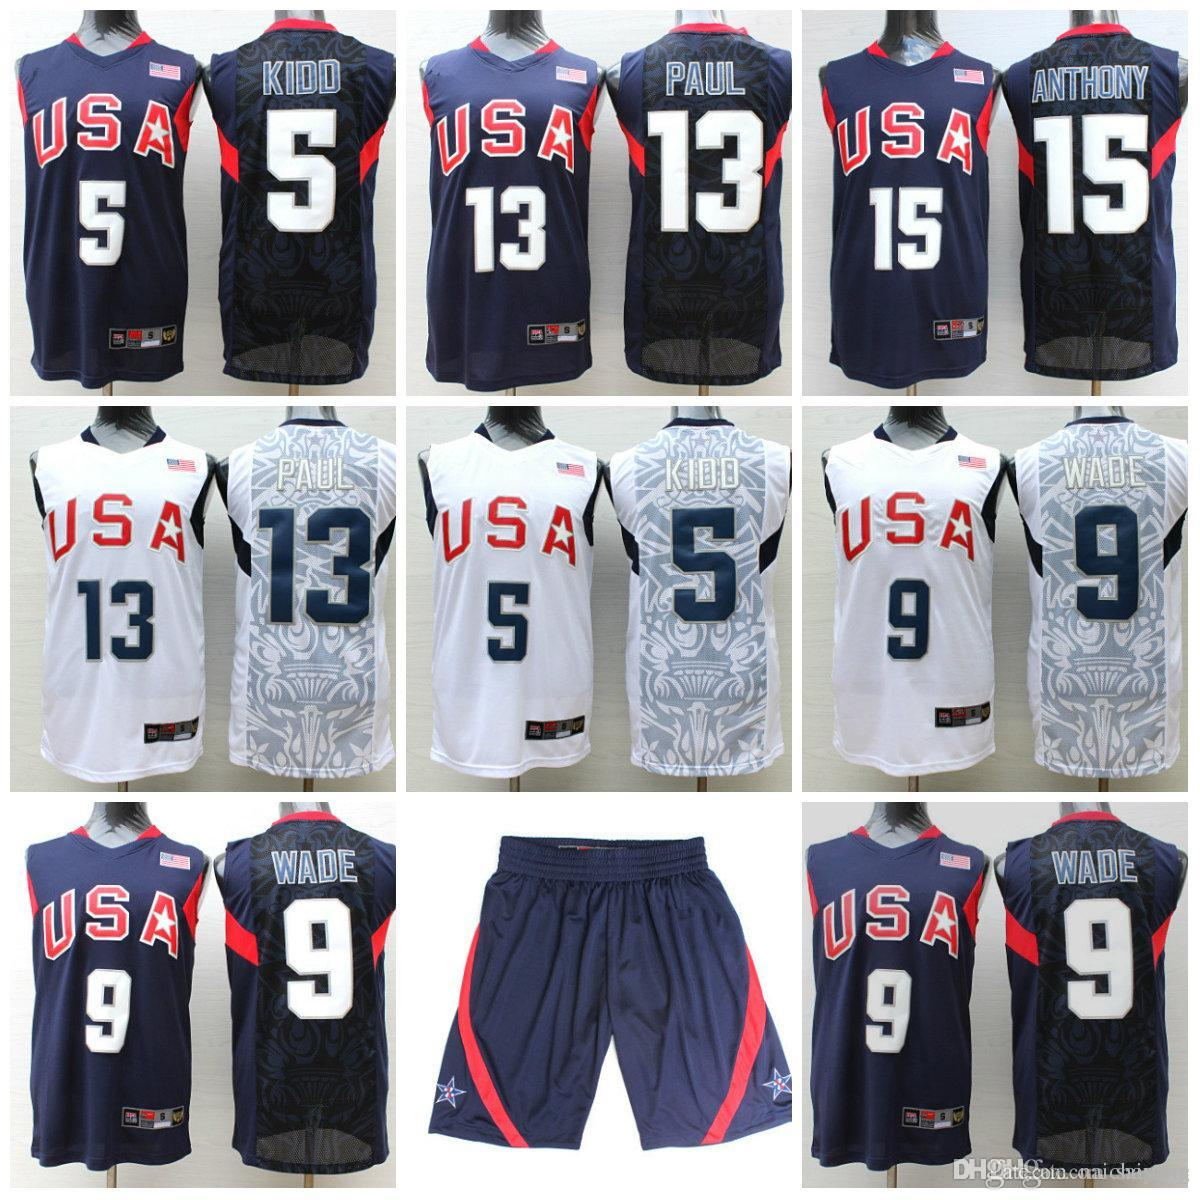 ... 2017 2017 Usa Dream Team Jerseys Shorts 5 Jason Kidd Jersey 13 Chris  Paul 9 Dwyane ... e8793079c